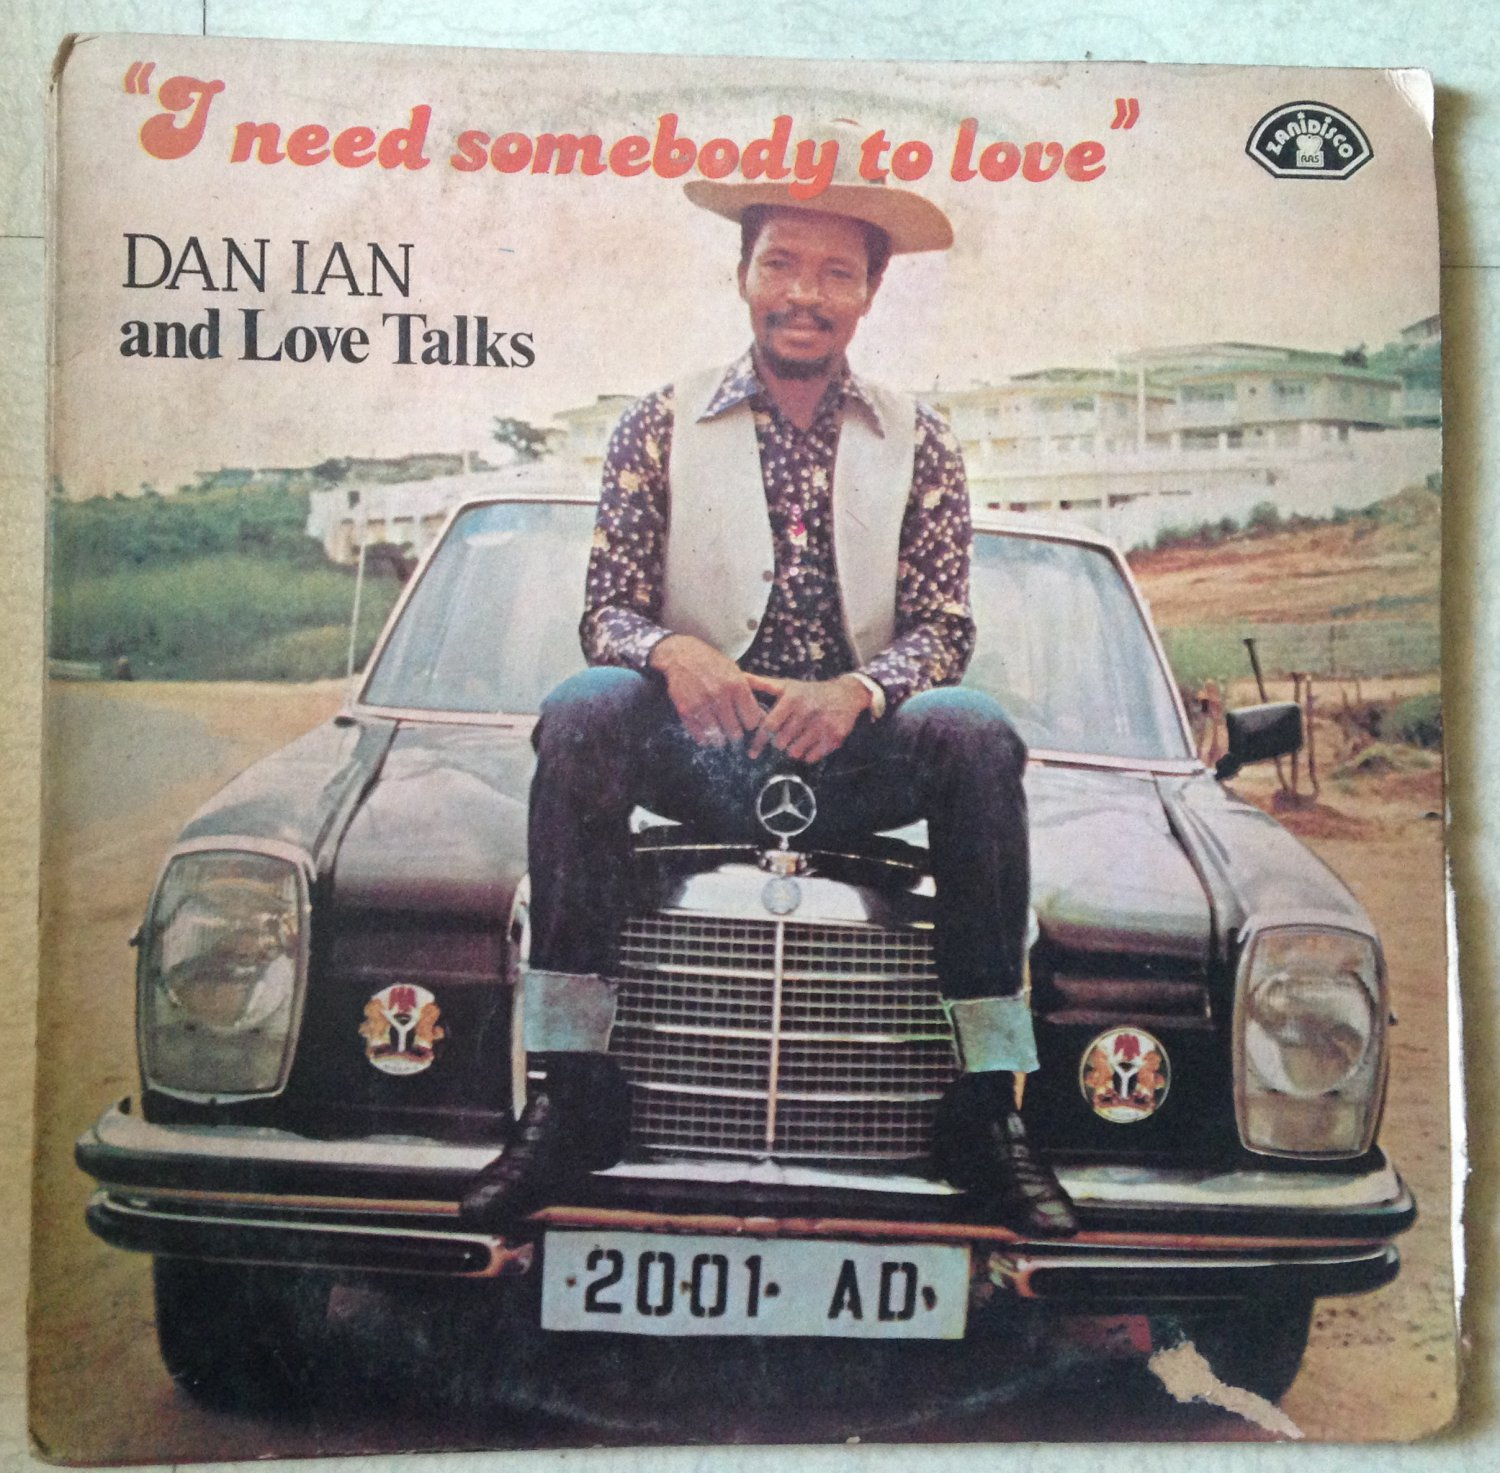 DAN IAN and THE LOVE TALKS LP i need somebody to love NIGERIA AFRO DISCO ZANIDISCO mp3 LISTEN